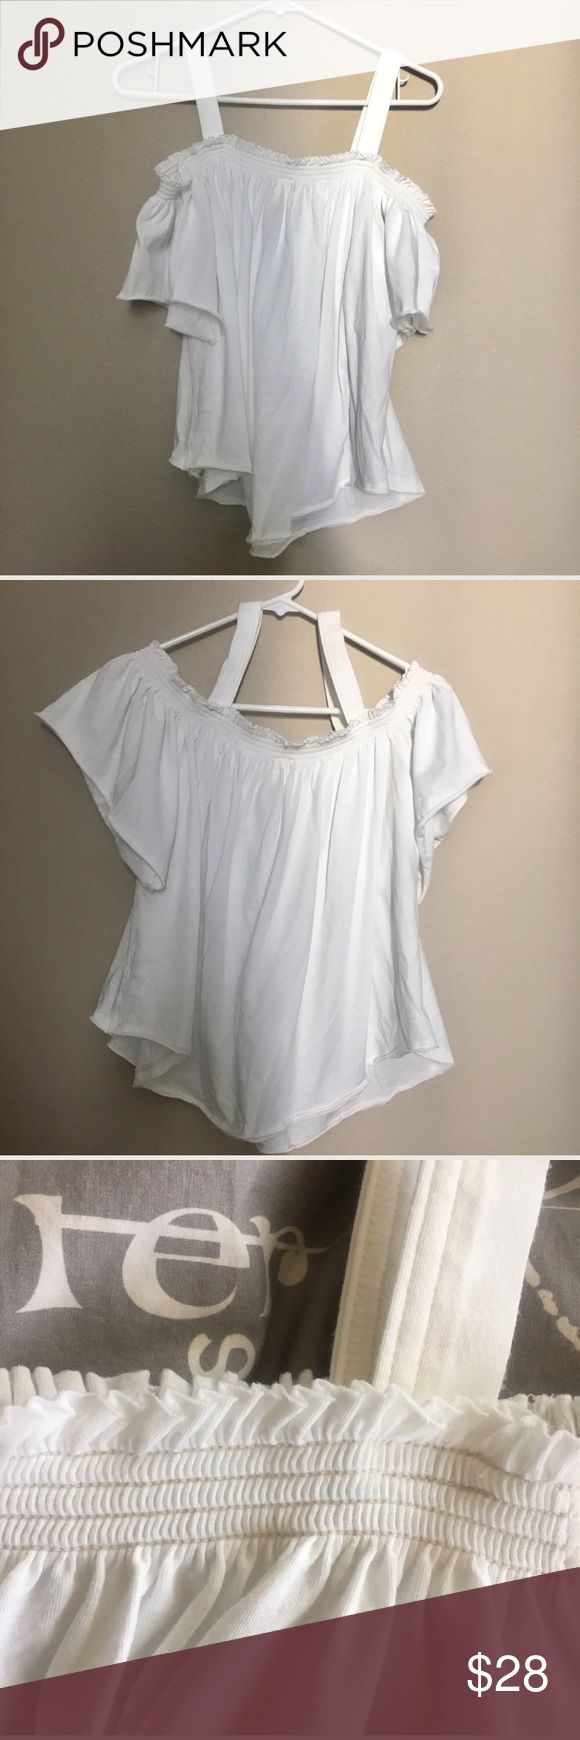 """Free People Cold Shoulder White Top Free People Cold Shoulder White Top  •Like new! •Lightweight and comfortable! •Stretchy elastic band around chest and shoulders   •Approximate Measurements: Bust: 34.5"""" Neckline to bottom: 18""""  Ships SAME or NEXT DAY from a SMOKE-FREE environment! Free People Tops Blouses"""